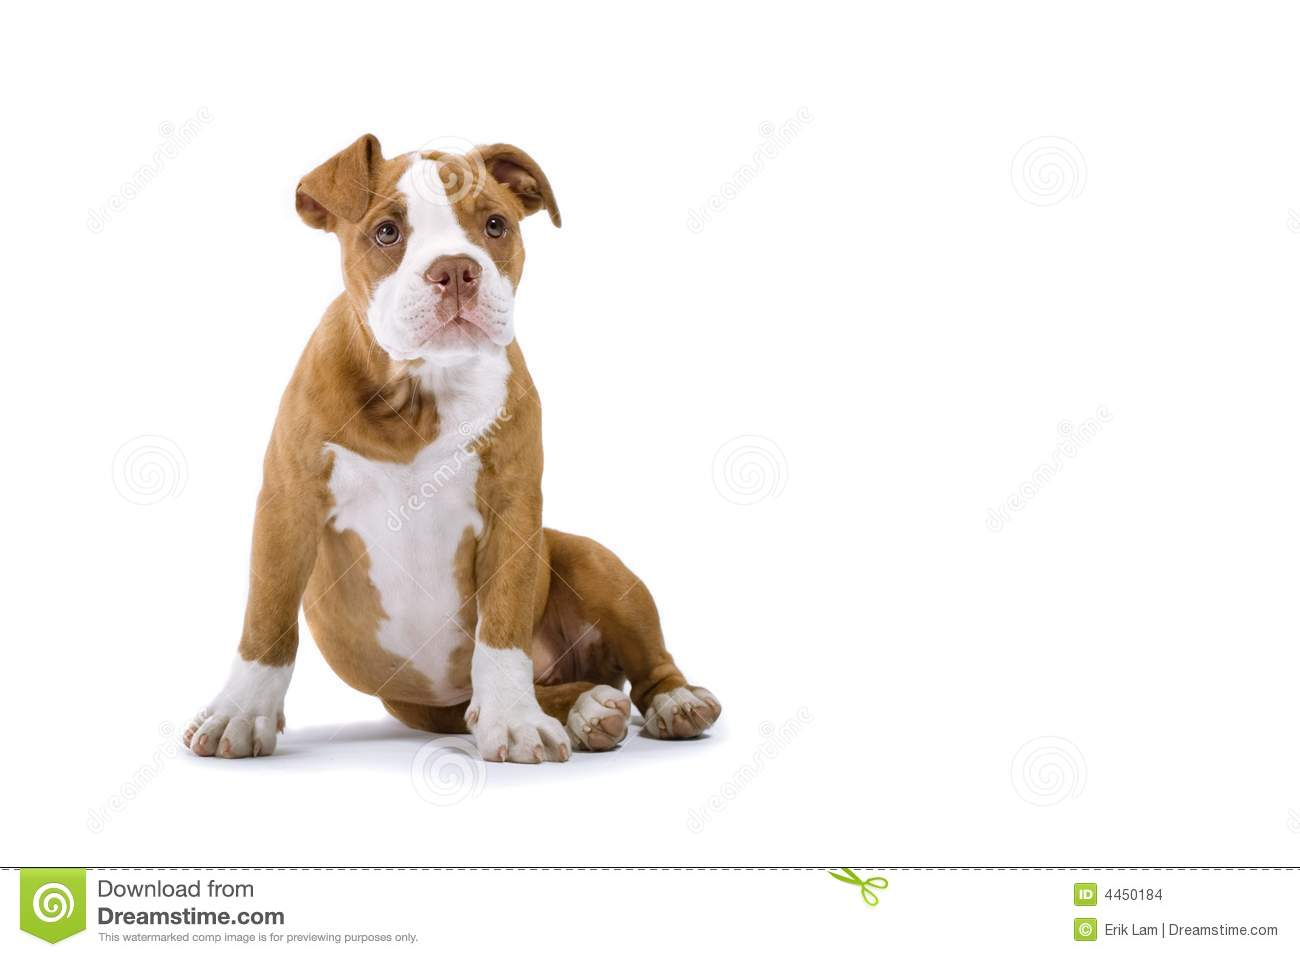 renasance bulldog renaissance bulldog stock photo image of puppie mammal 7975